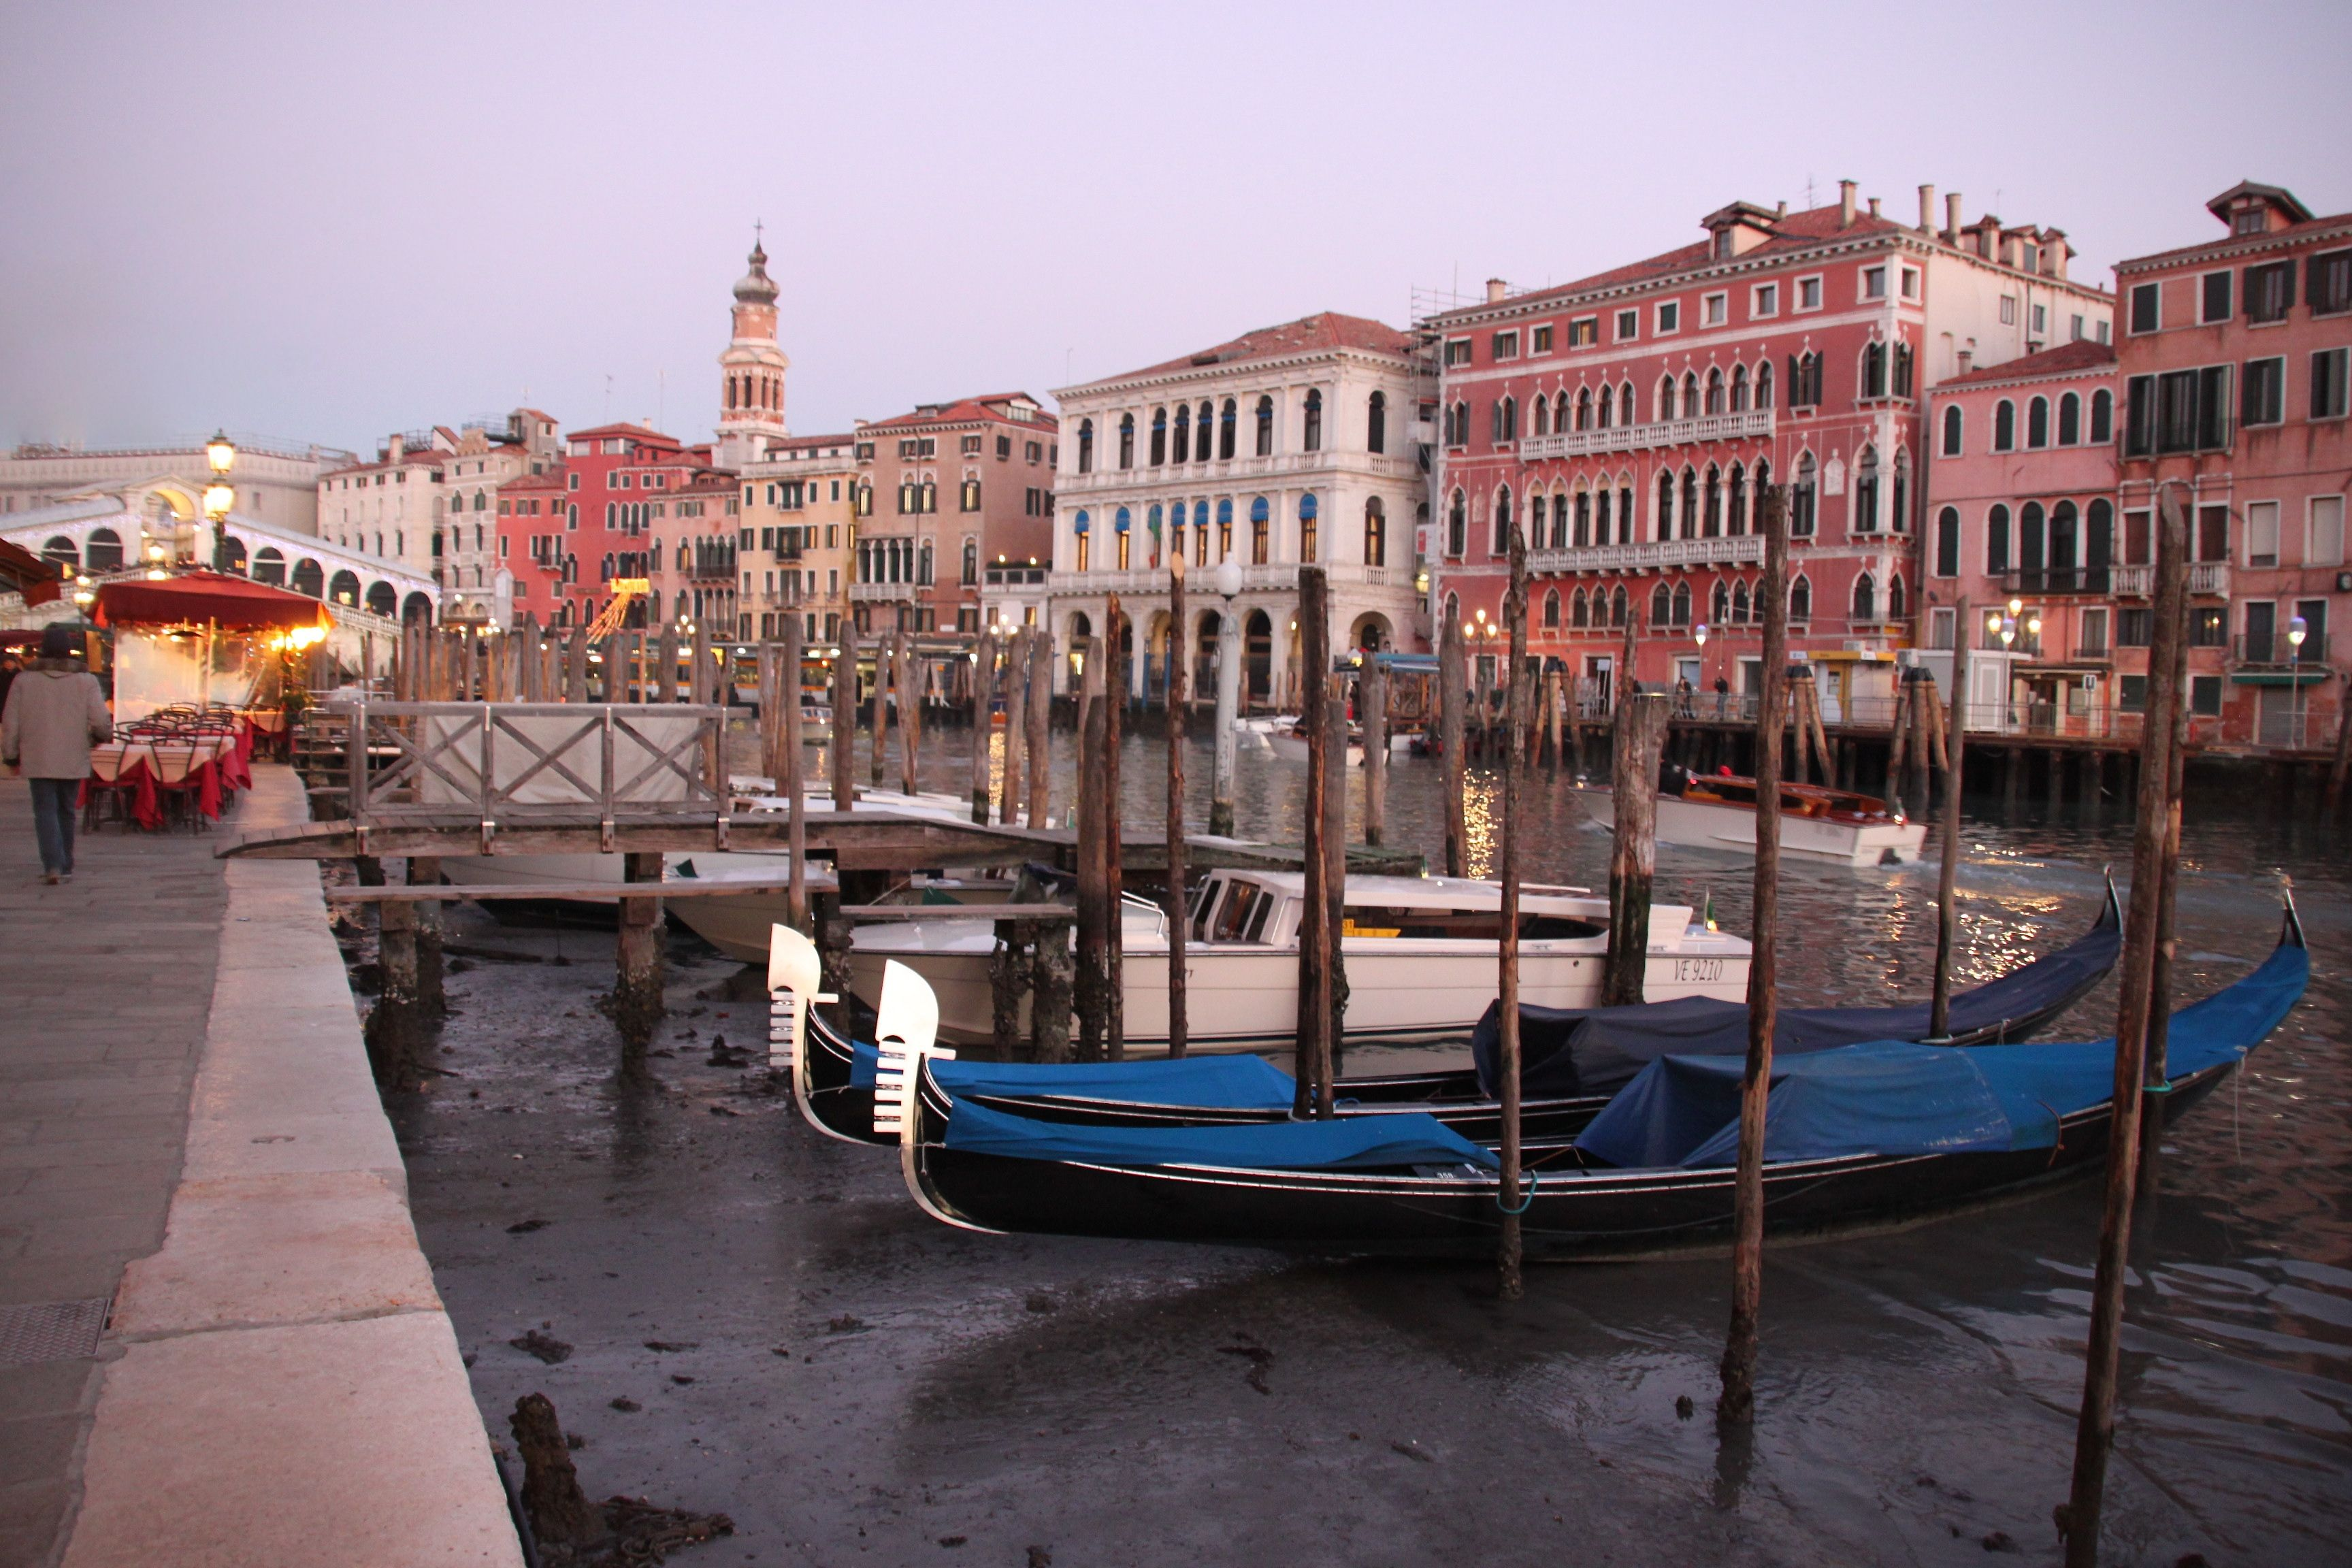 Dreamdiscoveritalia page 14 of 25 discovering italy one trip gondole beached on the muddy grand canal nvjuhfo Choice Image